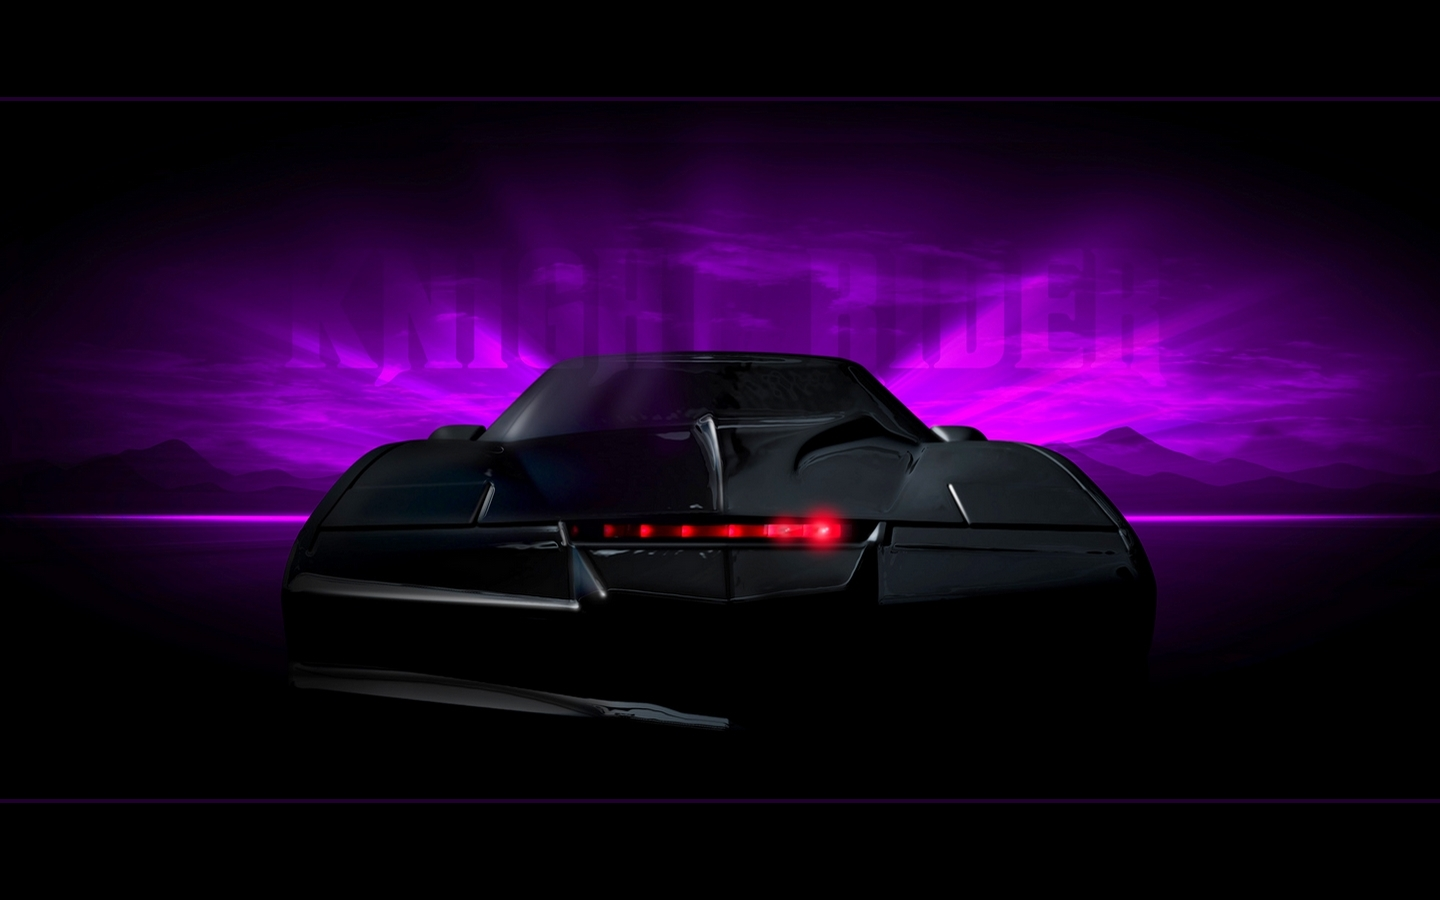 Knight Rider Wallpaper Download 1440x900